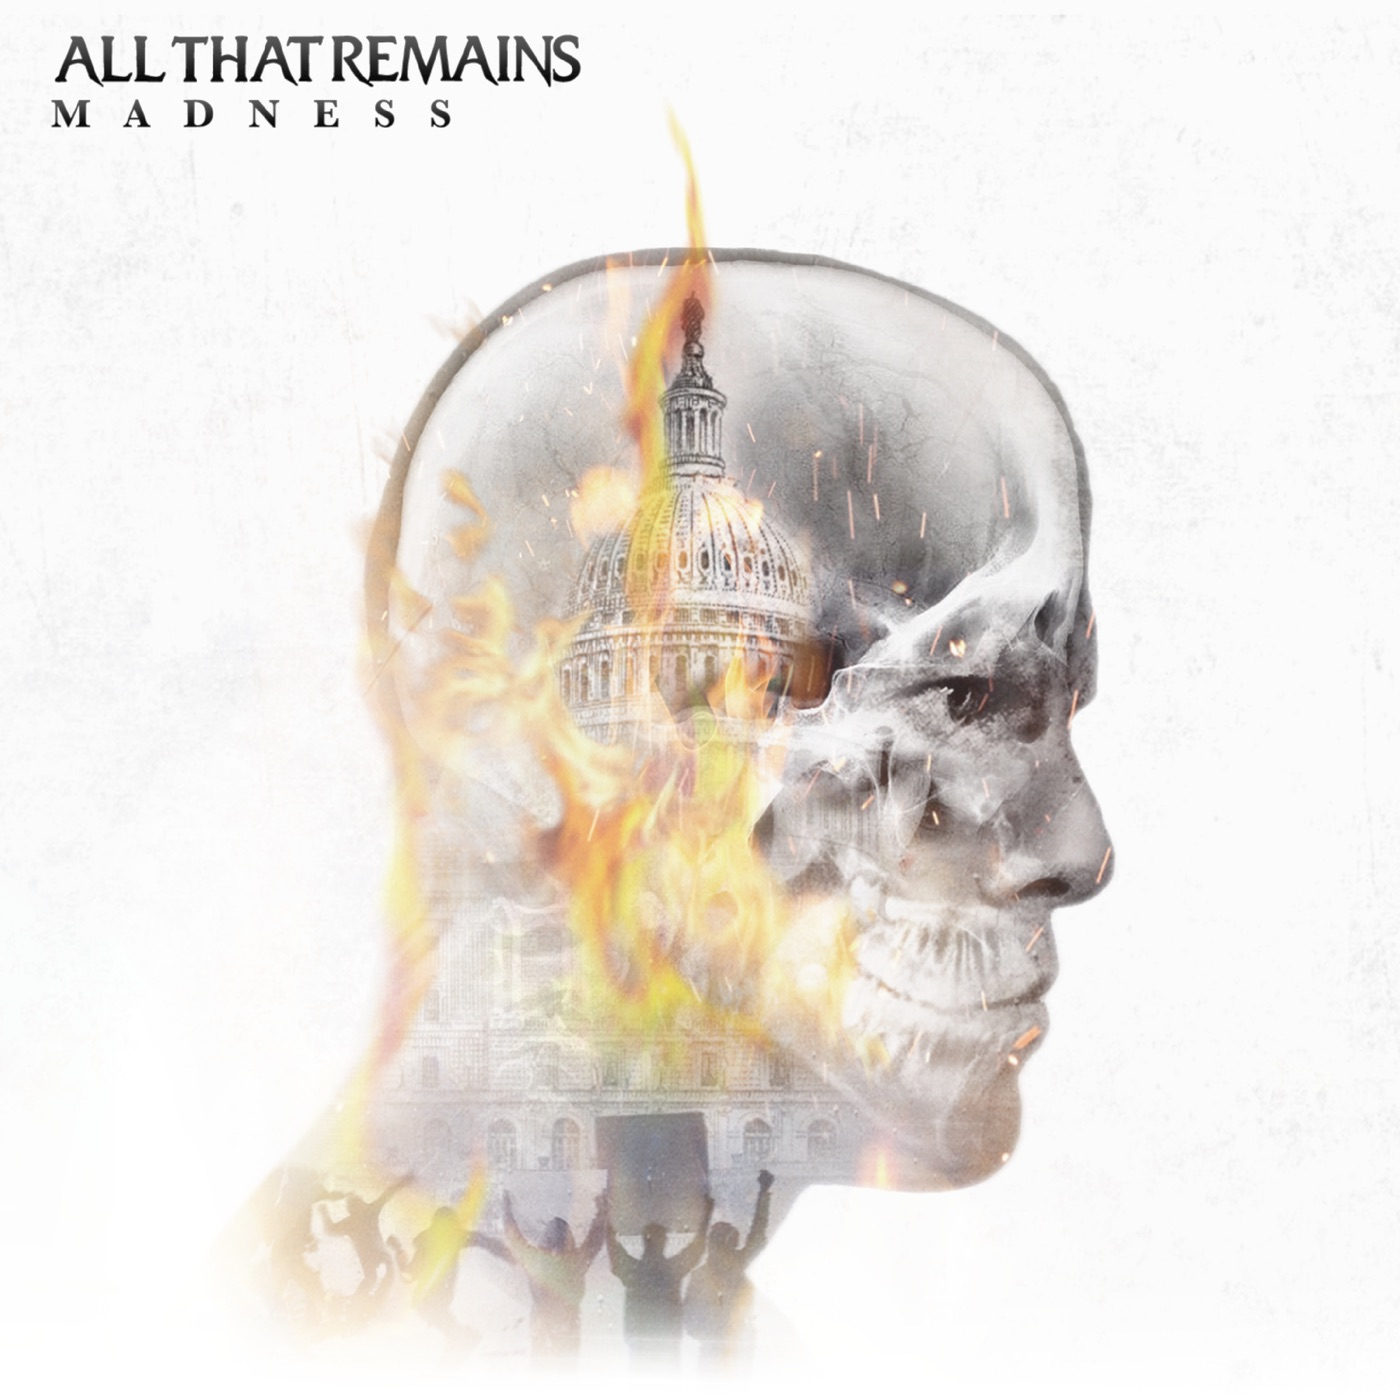 All That Remains - Louder [single] (2017)